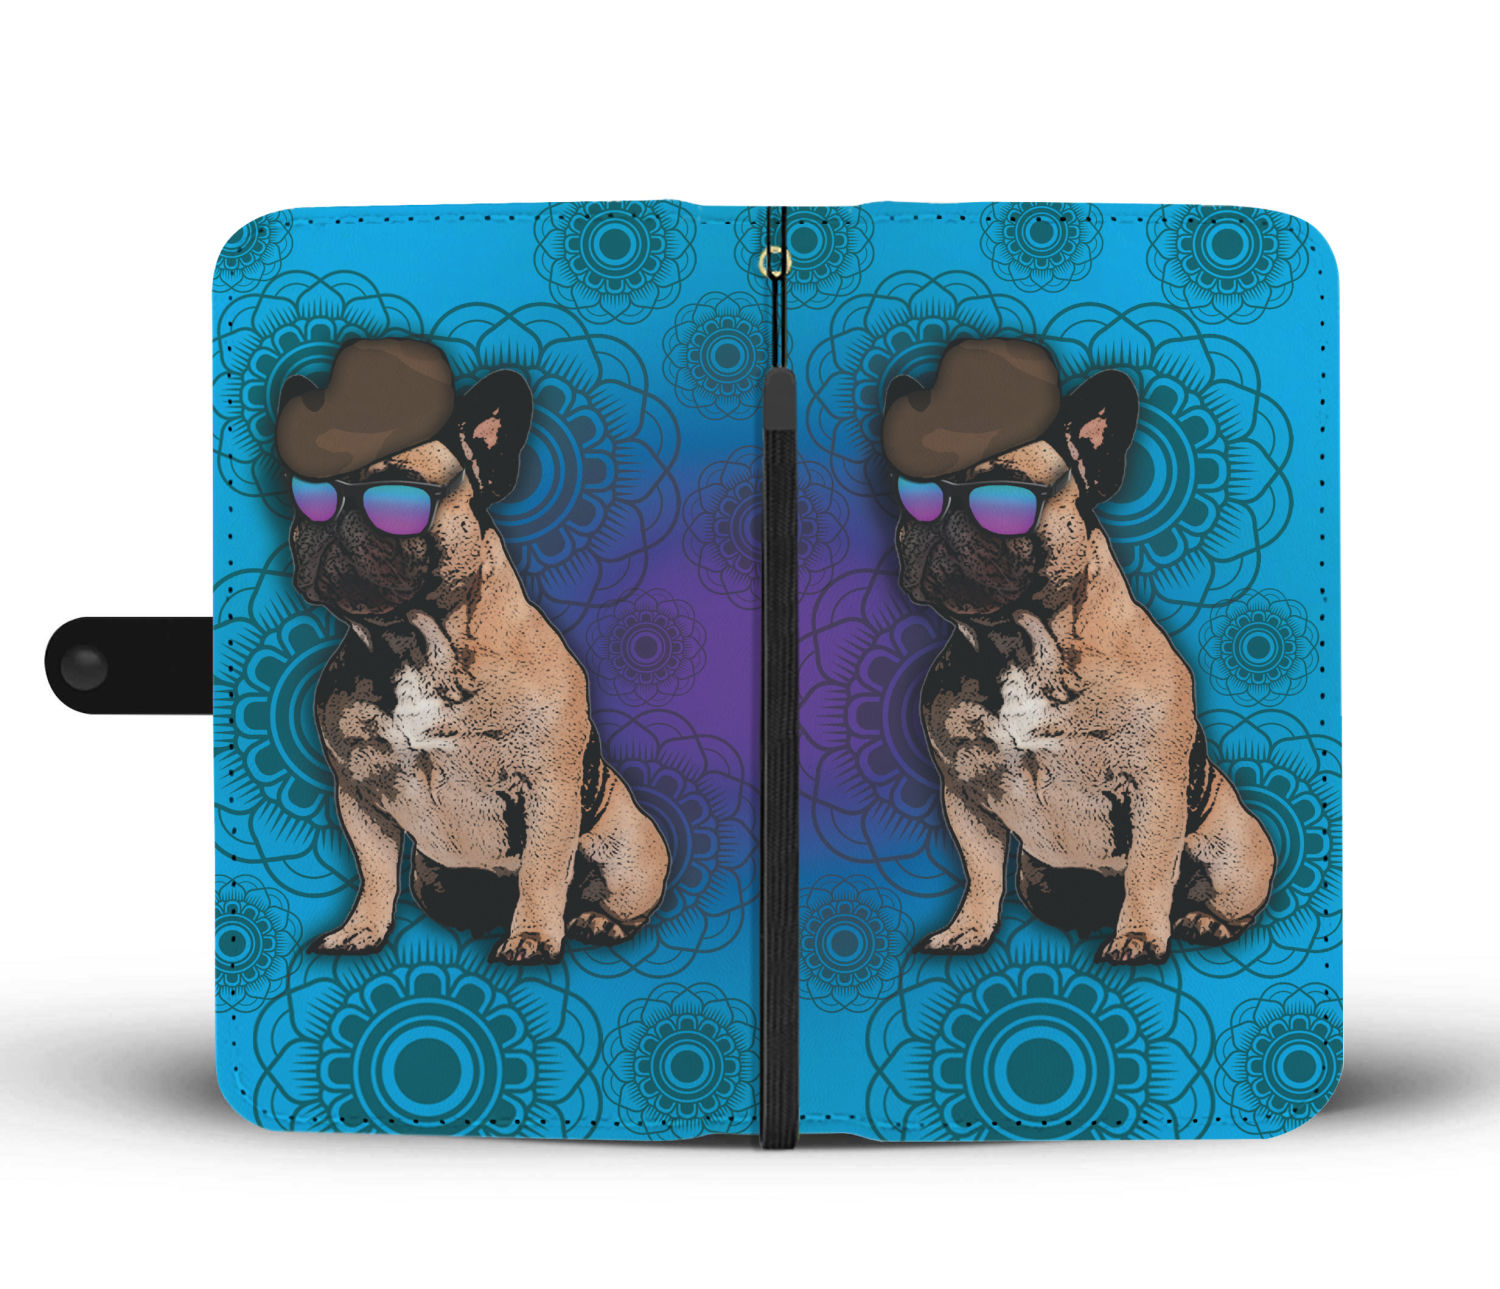 French Bulldog Phone Case Wallet - Blue